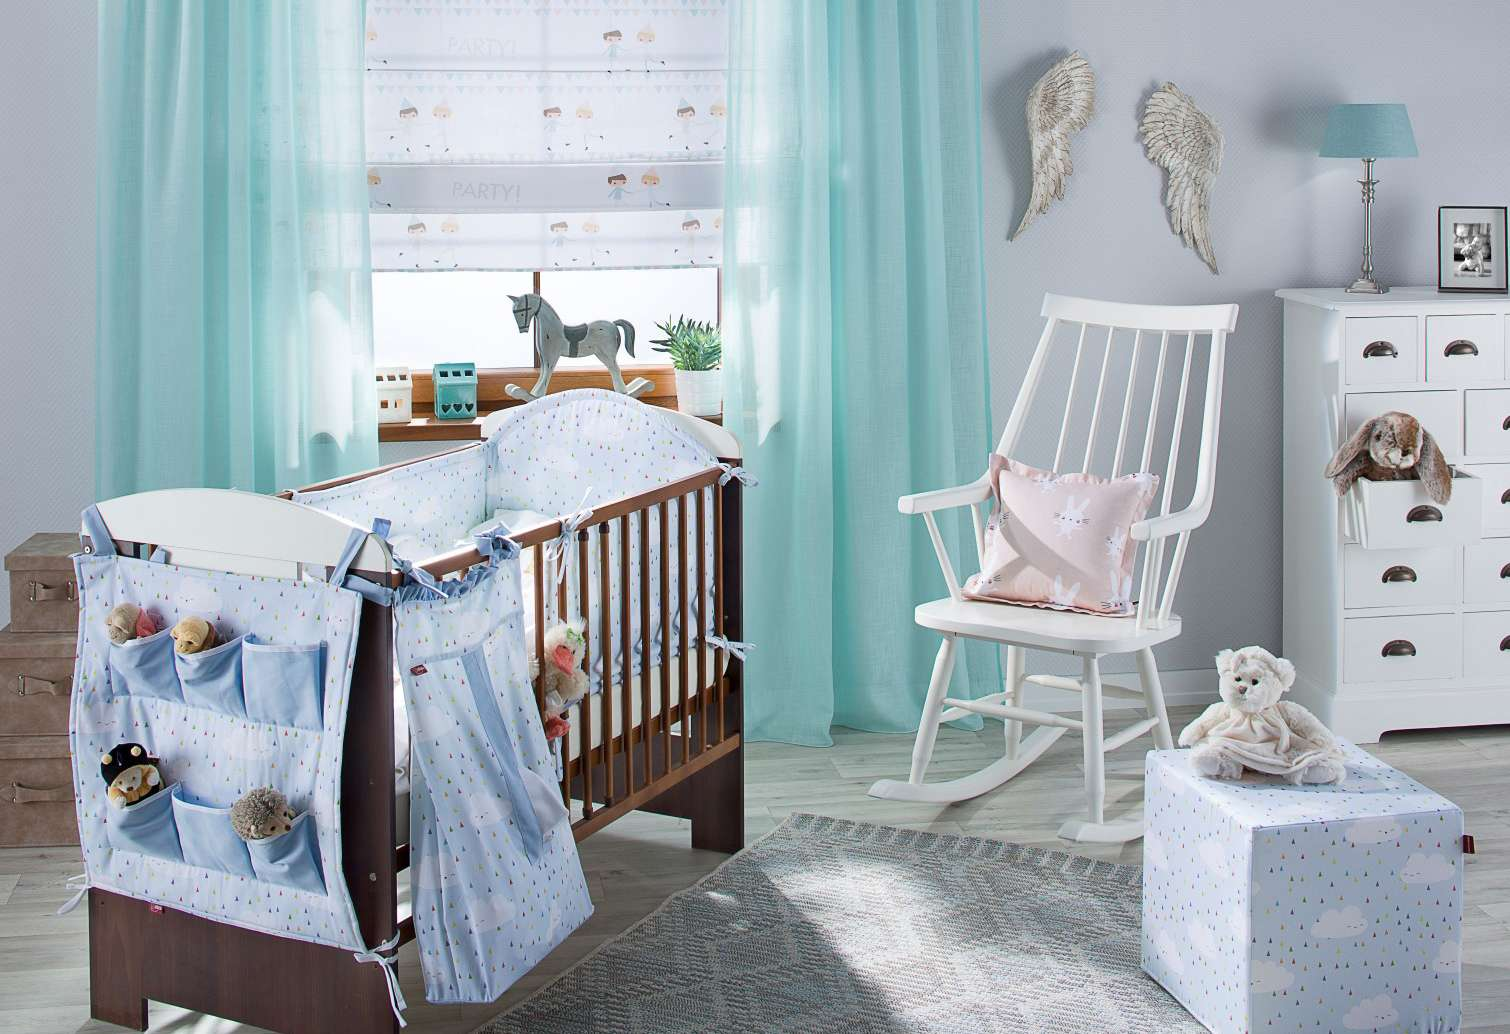 Kids room Apanona